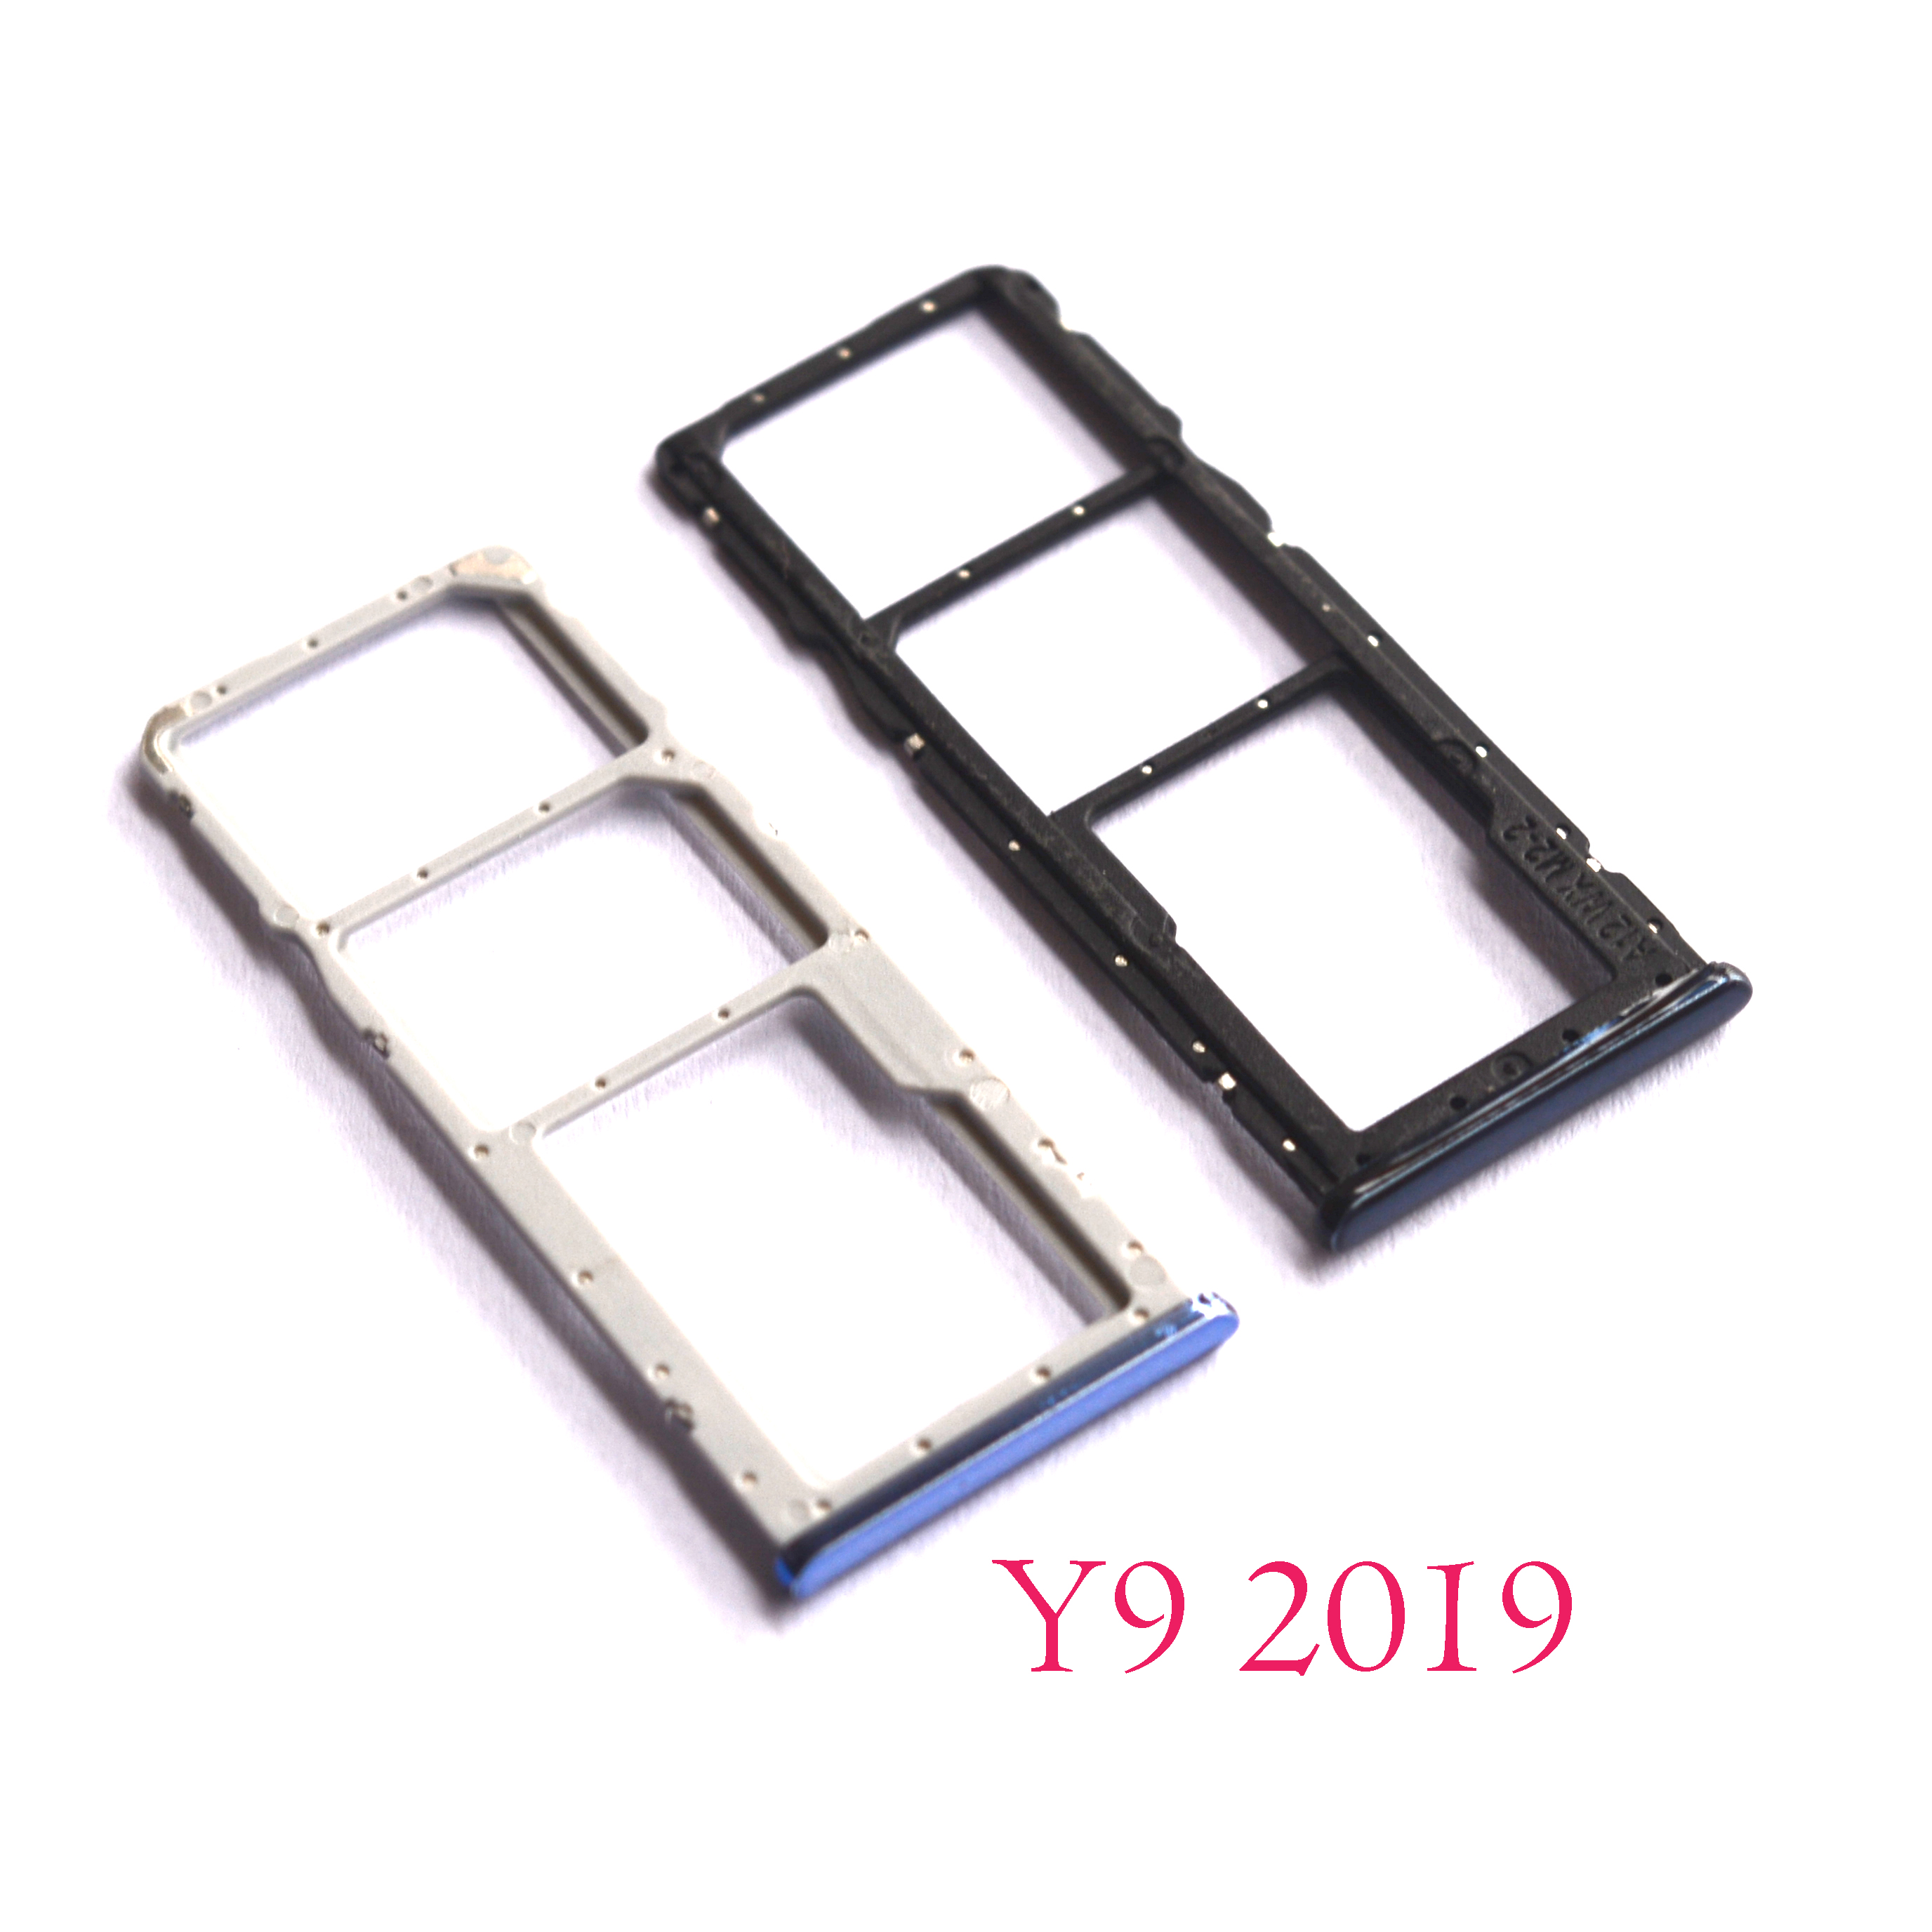 US $1 5 |For Huawei Y9 2019 SIM Tray Holder SD Card Reader Slot Adapter-in  SIM Card Adapters from Cellphones & Telecommunications on Aliexpress com |